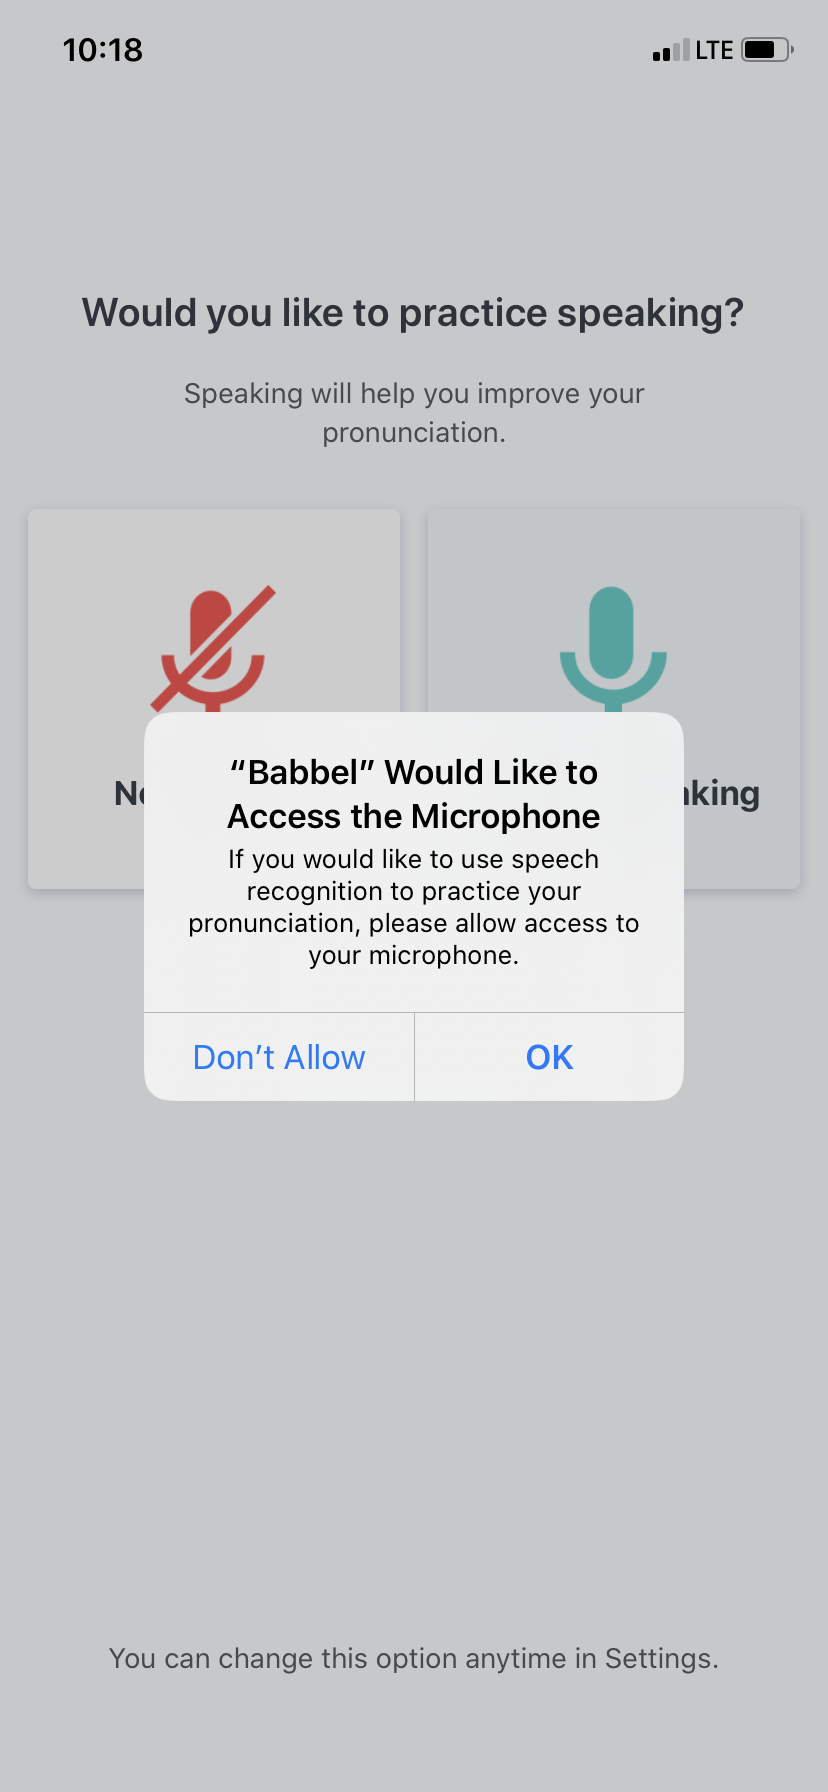 babbel app user onboarding mobile microphone access request permission priming 2